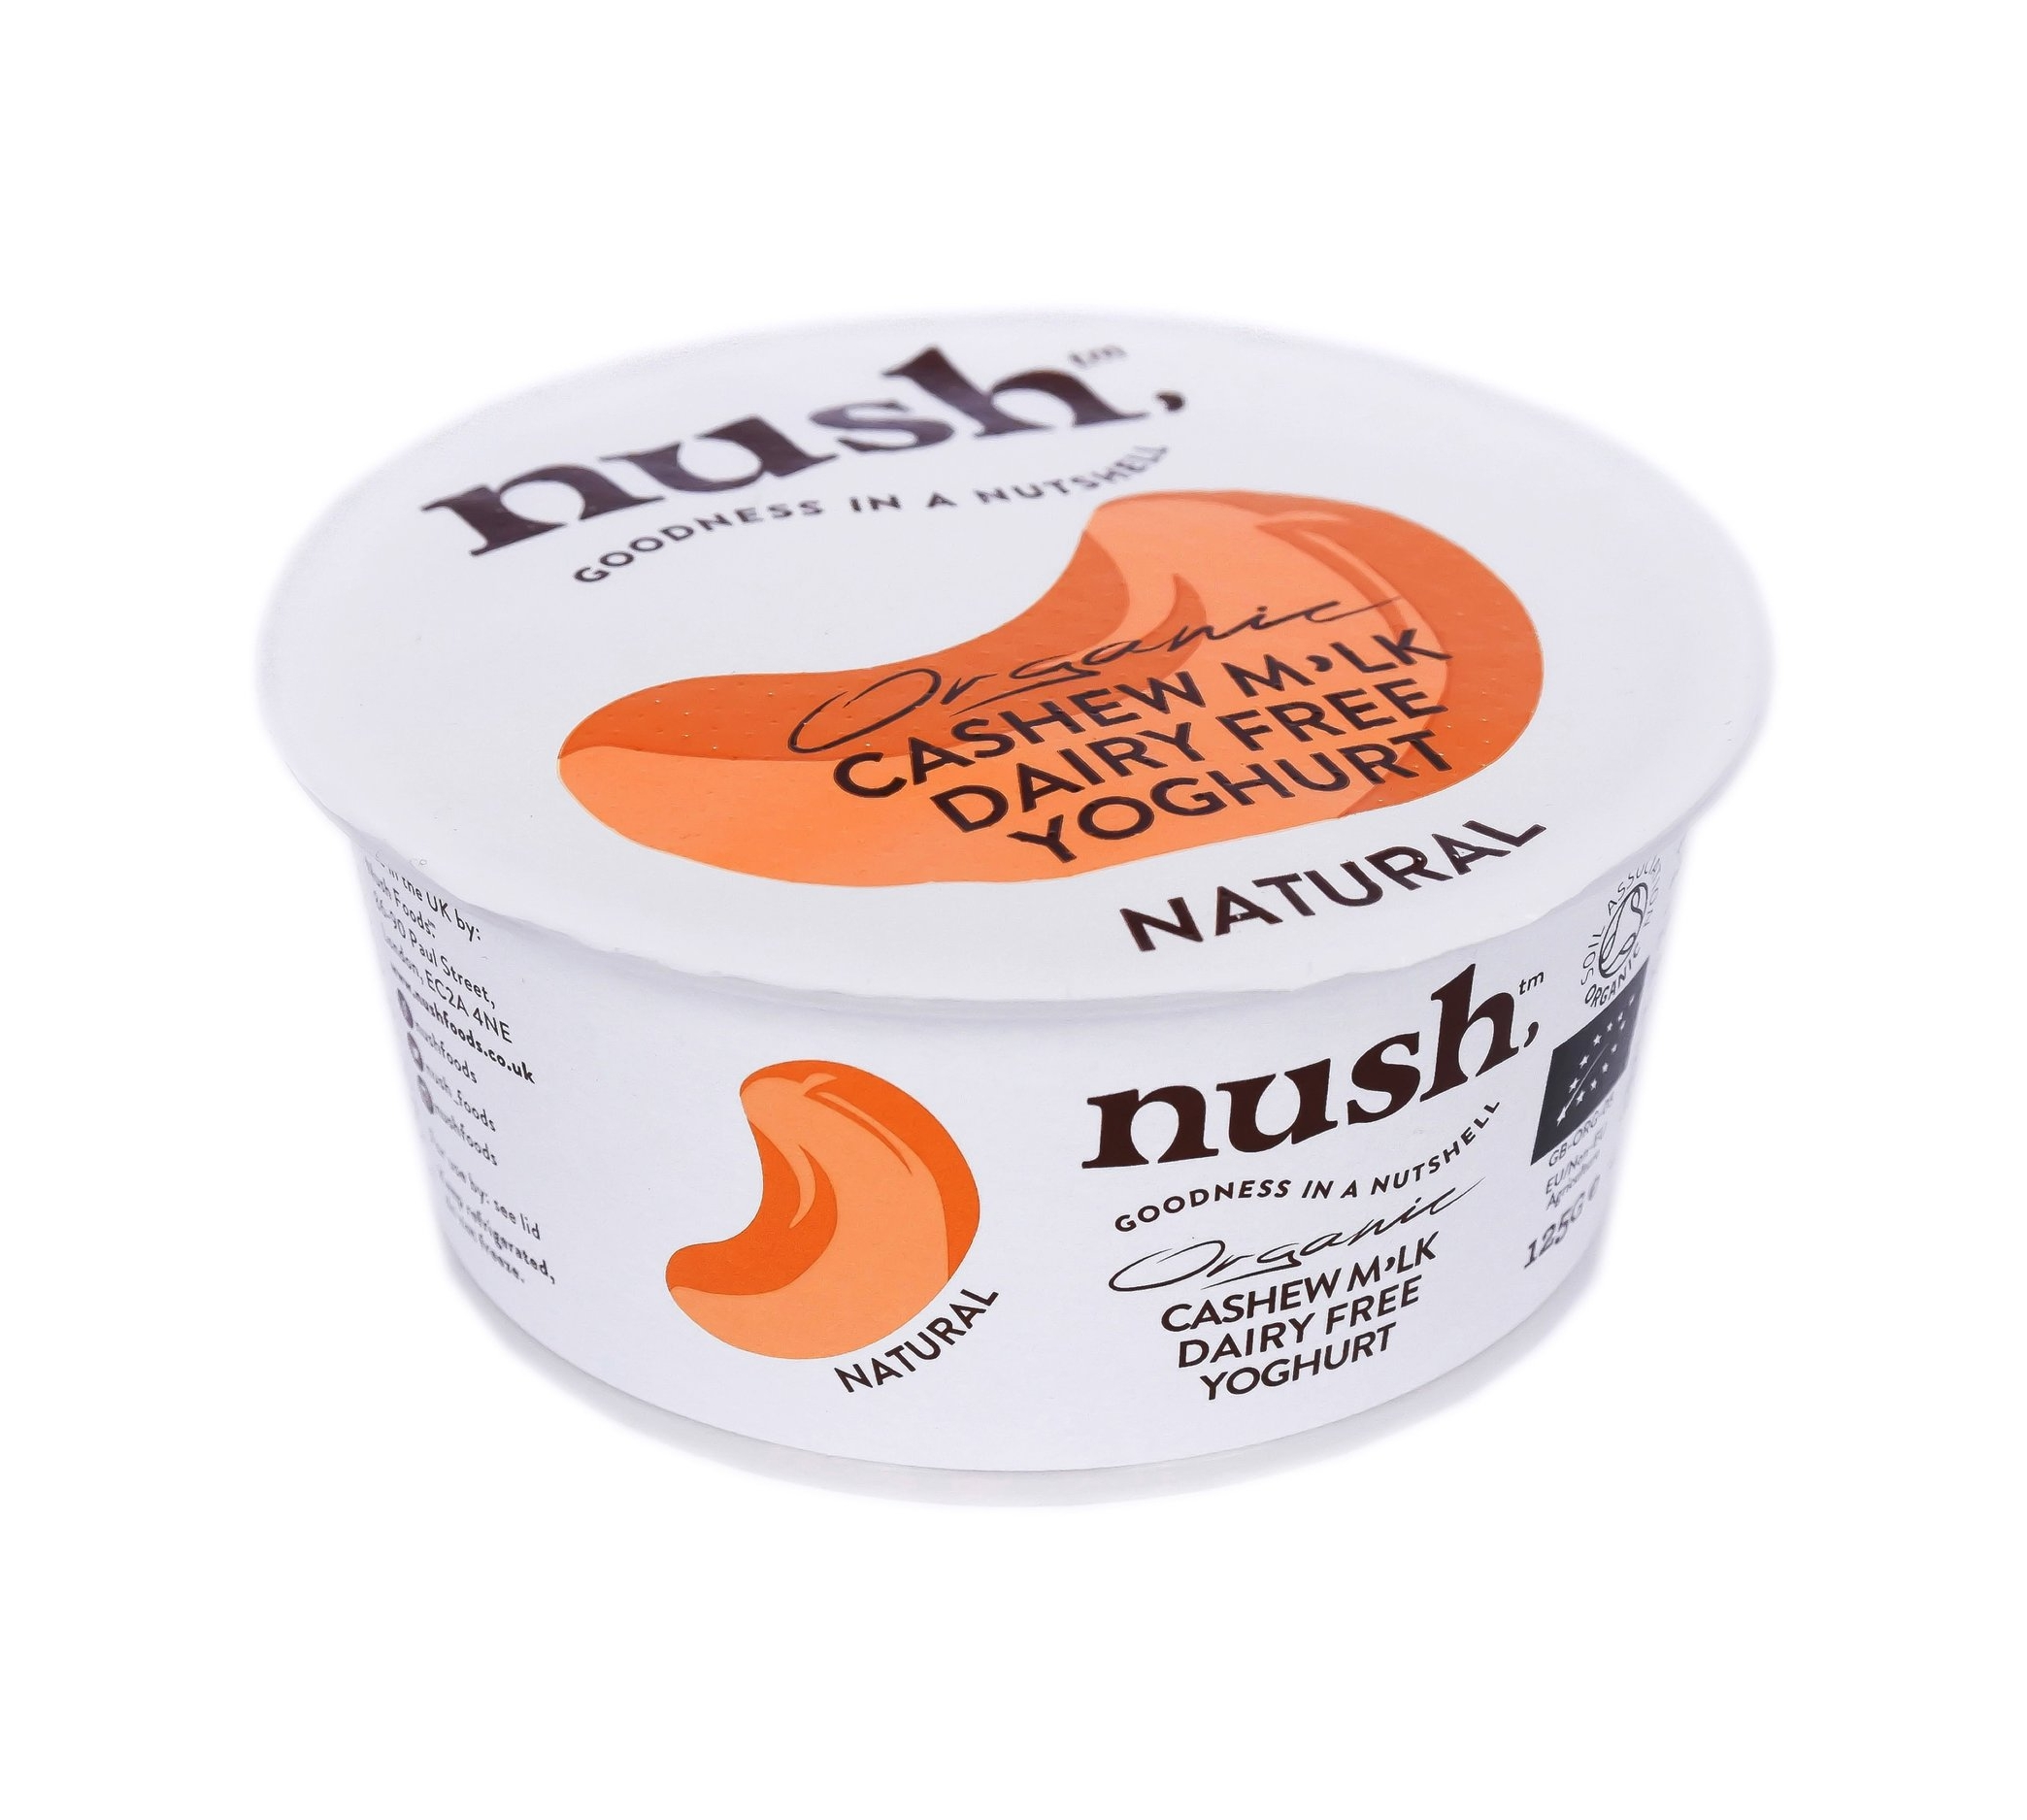 Nush - Creamy cashew milk (made from the highest quality organic Vietnamese cashews) is carefully balanced with vegan yoghurt cultures to create a gentle, natural cashew yoghurt; a tasty base for our Cacao & Cashew quinoa granola.